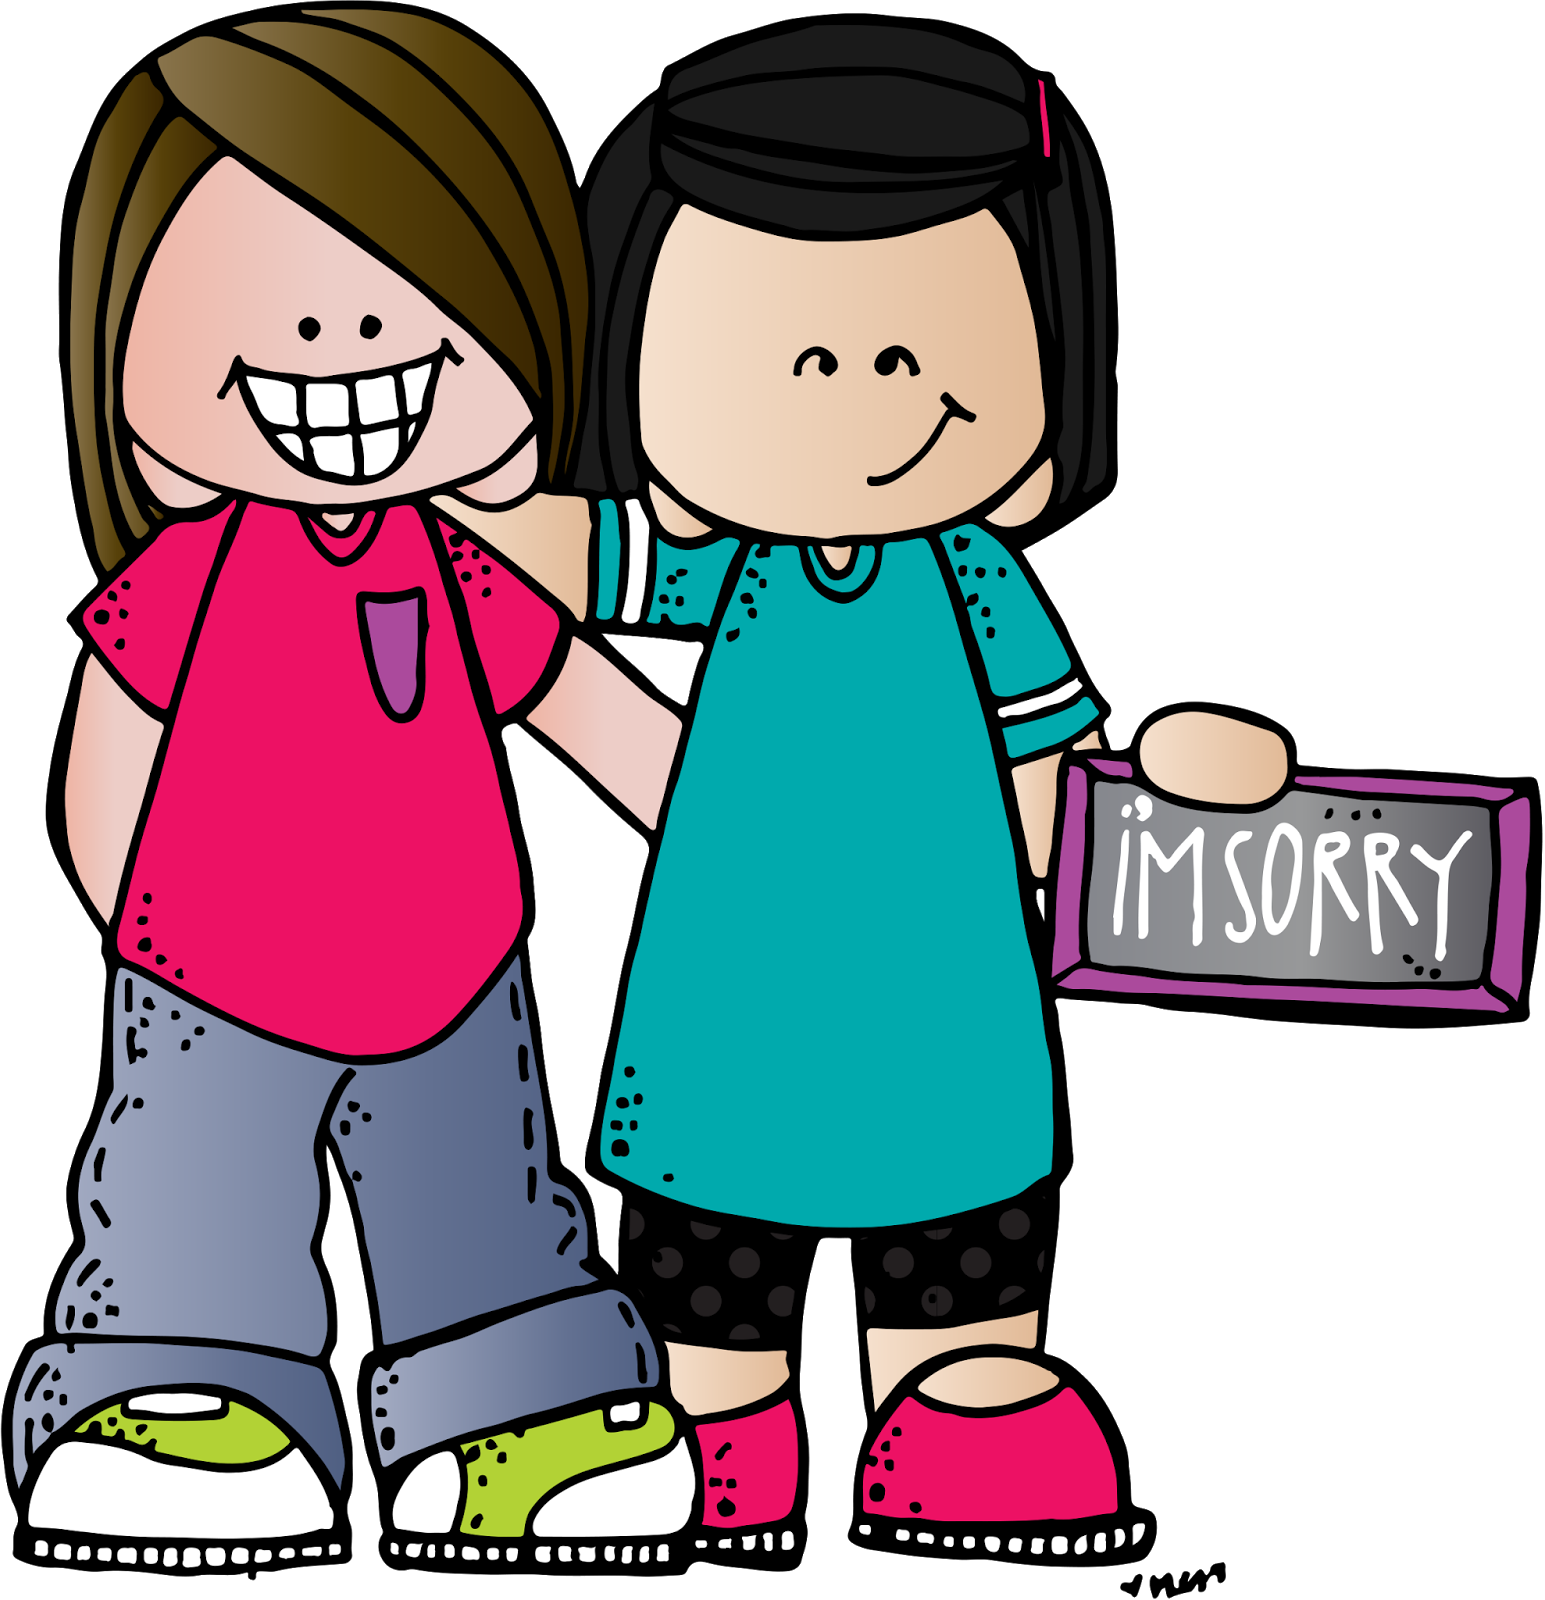 Forgiveness clipart love thy neighbor. Image result for melonheadz